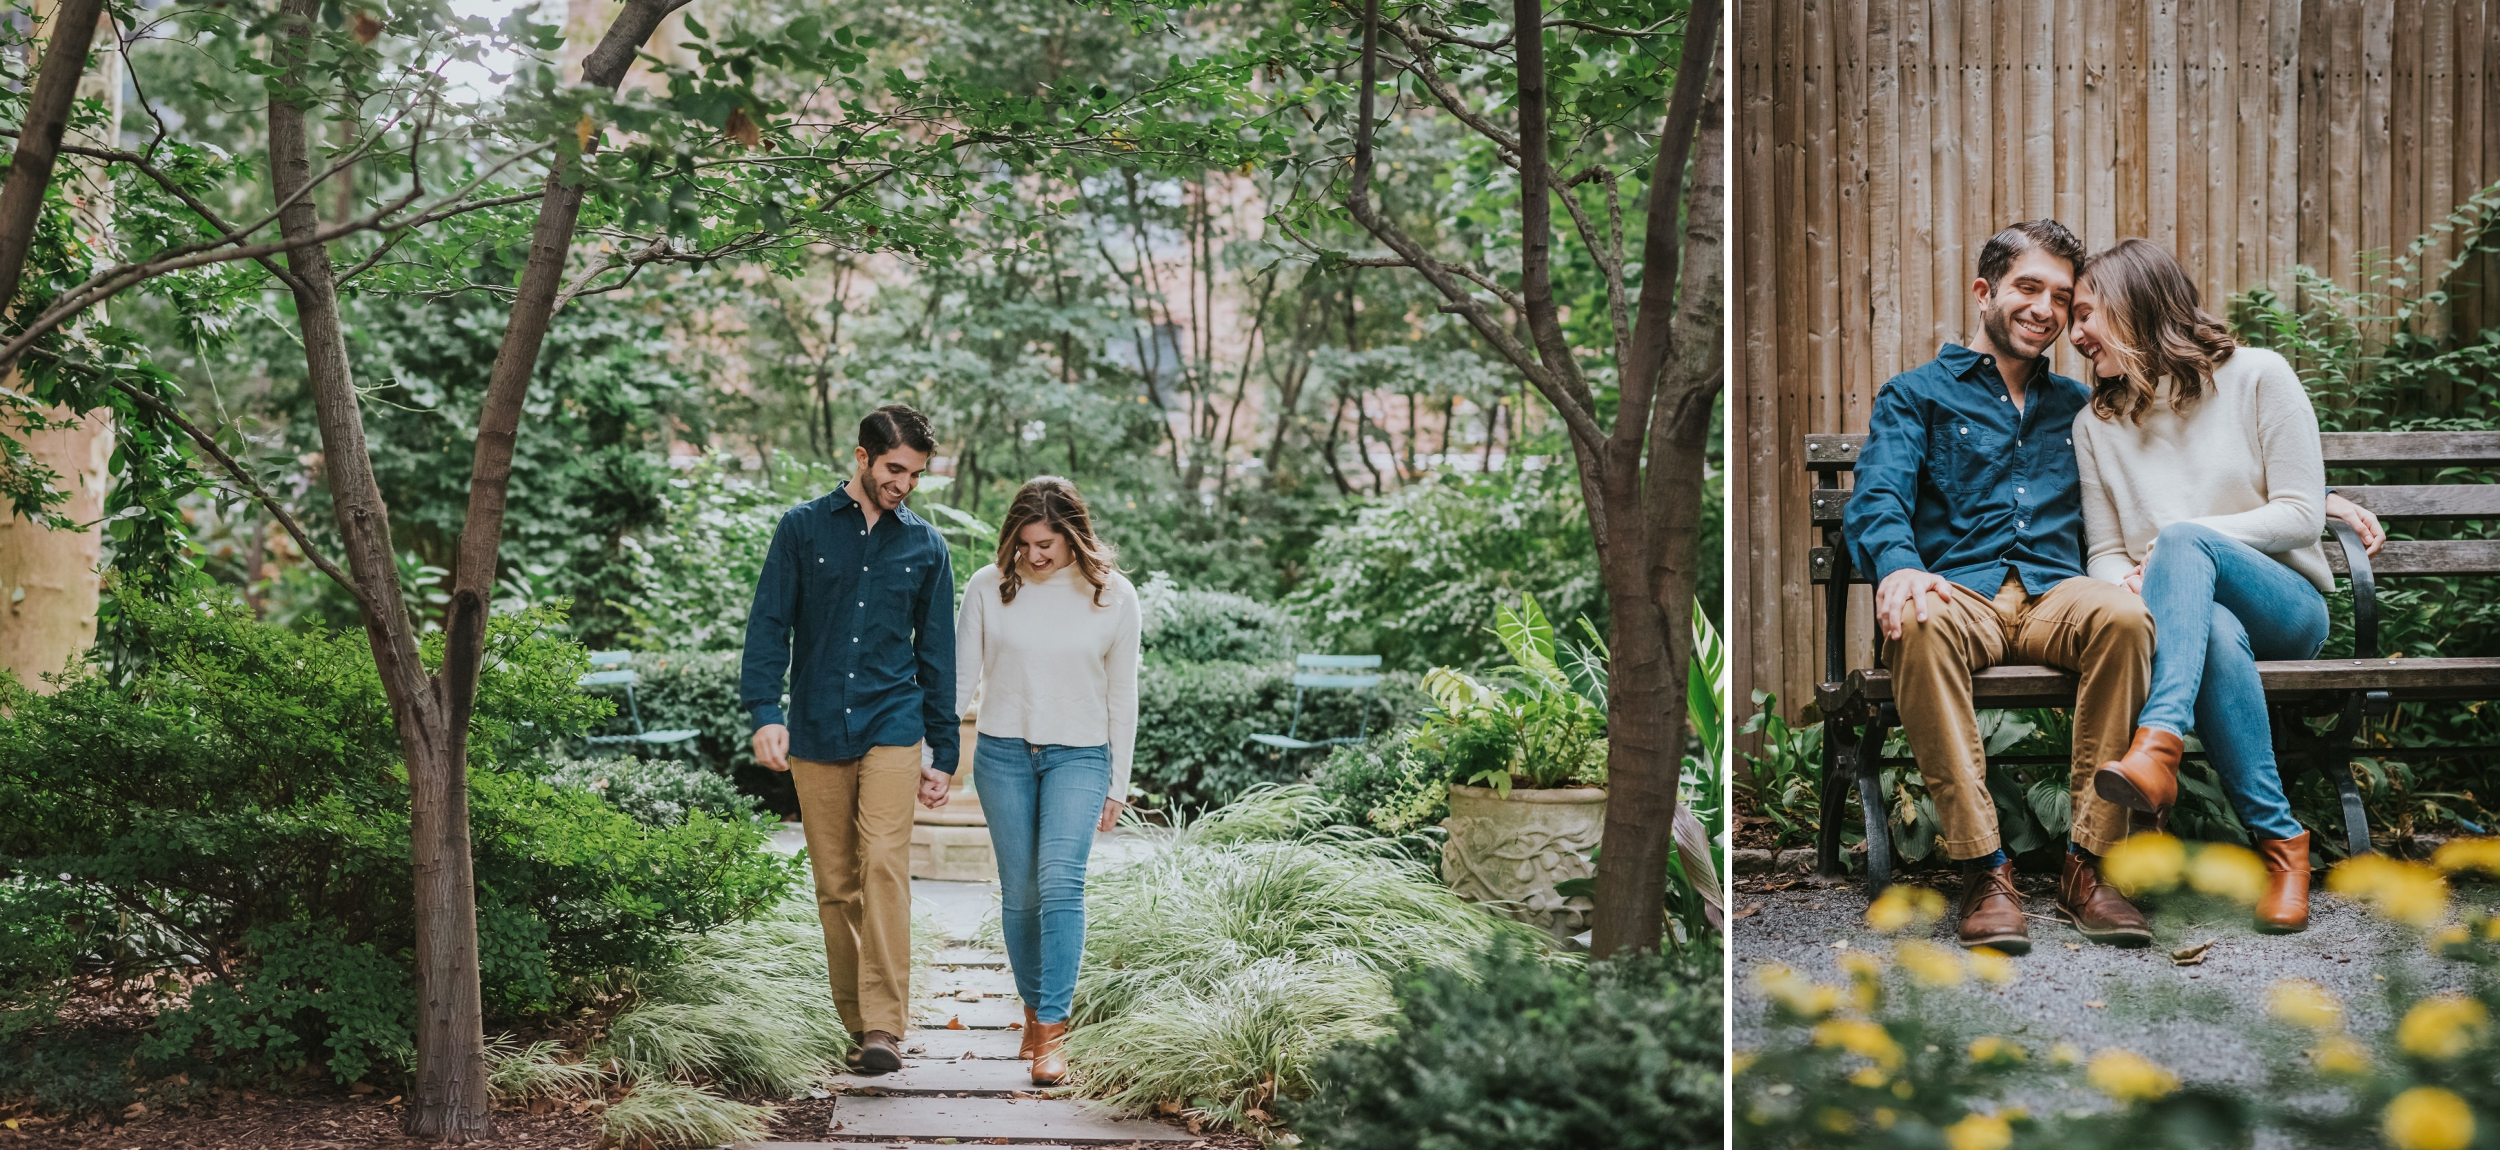 Elizabeth and Andrew Tudor City NYC Engagement 00.jpg